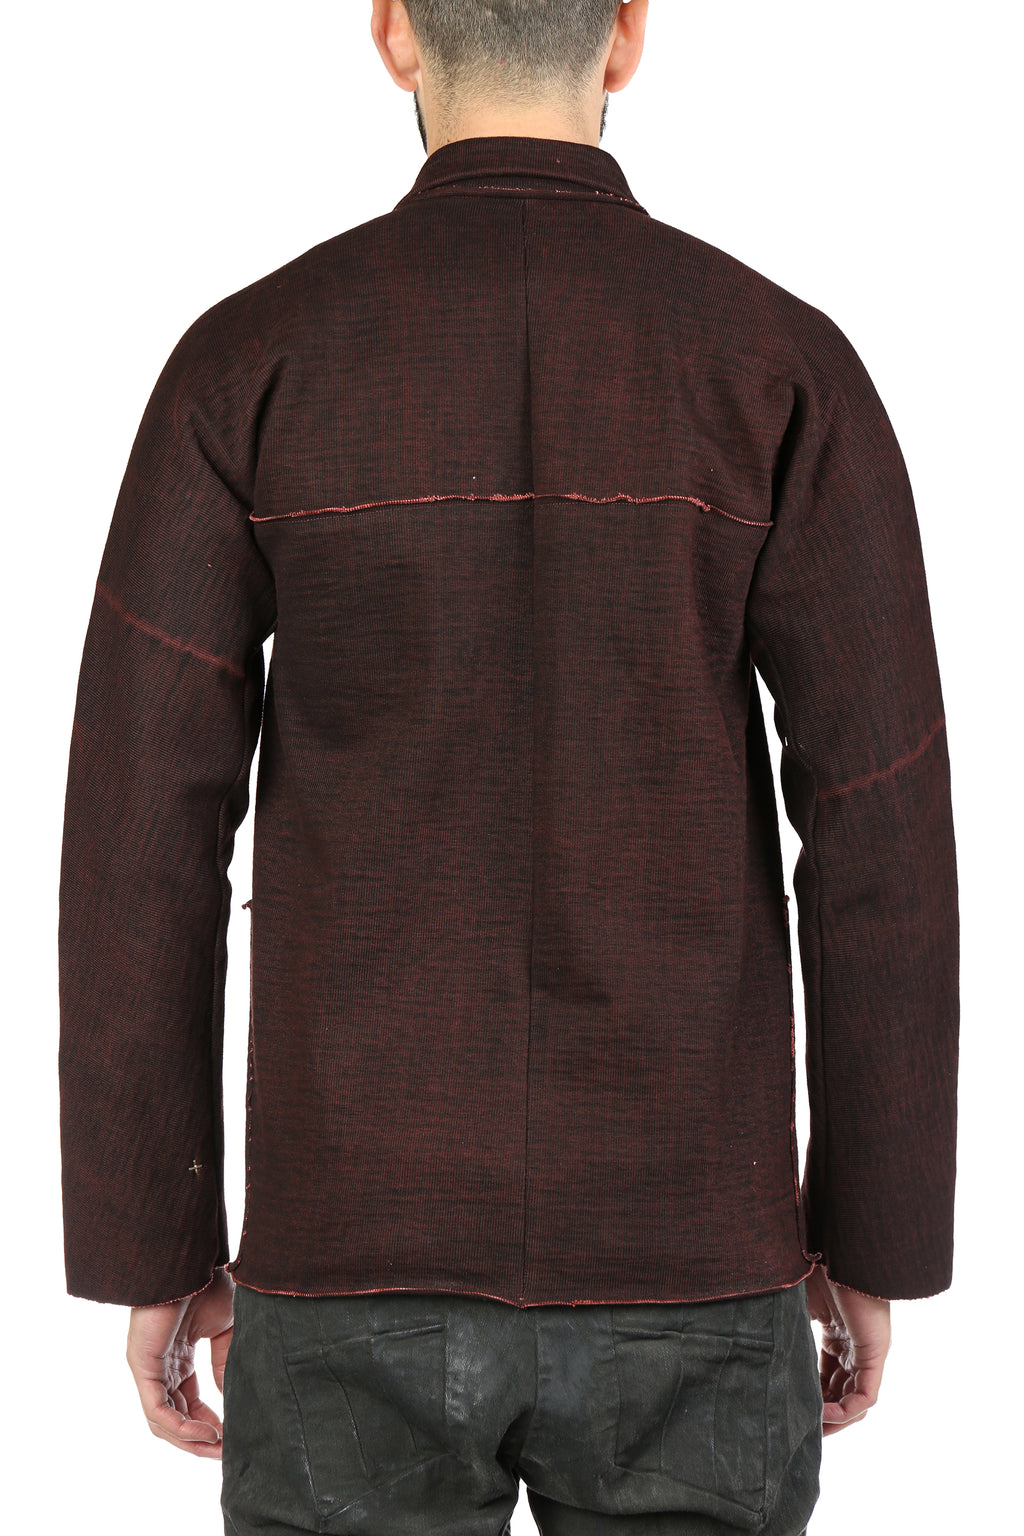 MA+ MEN UTILITY UNLINED JACKET